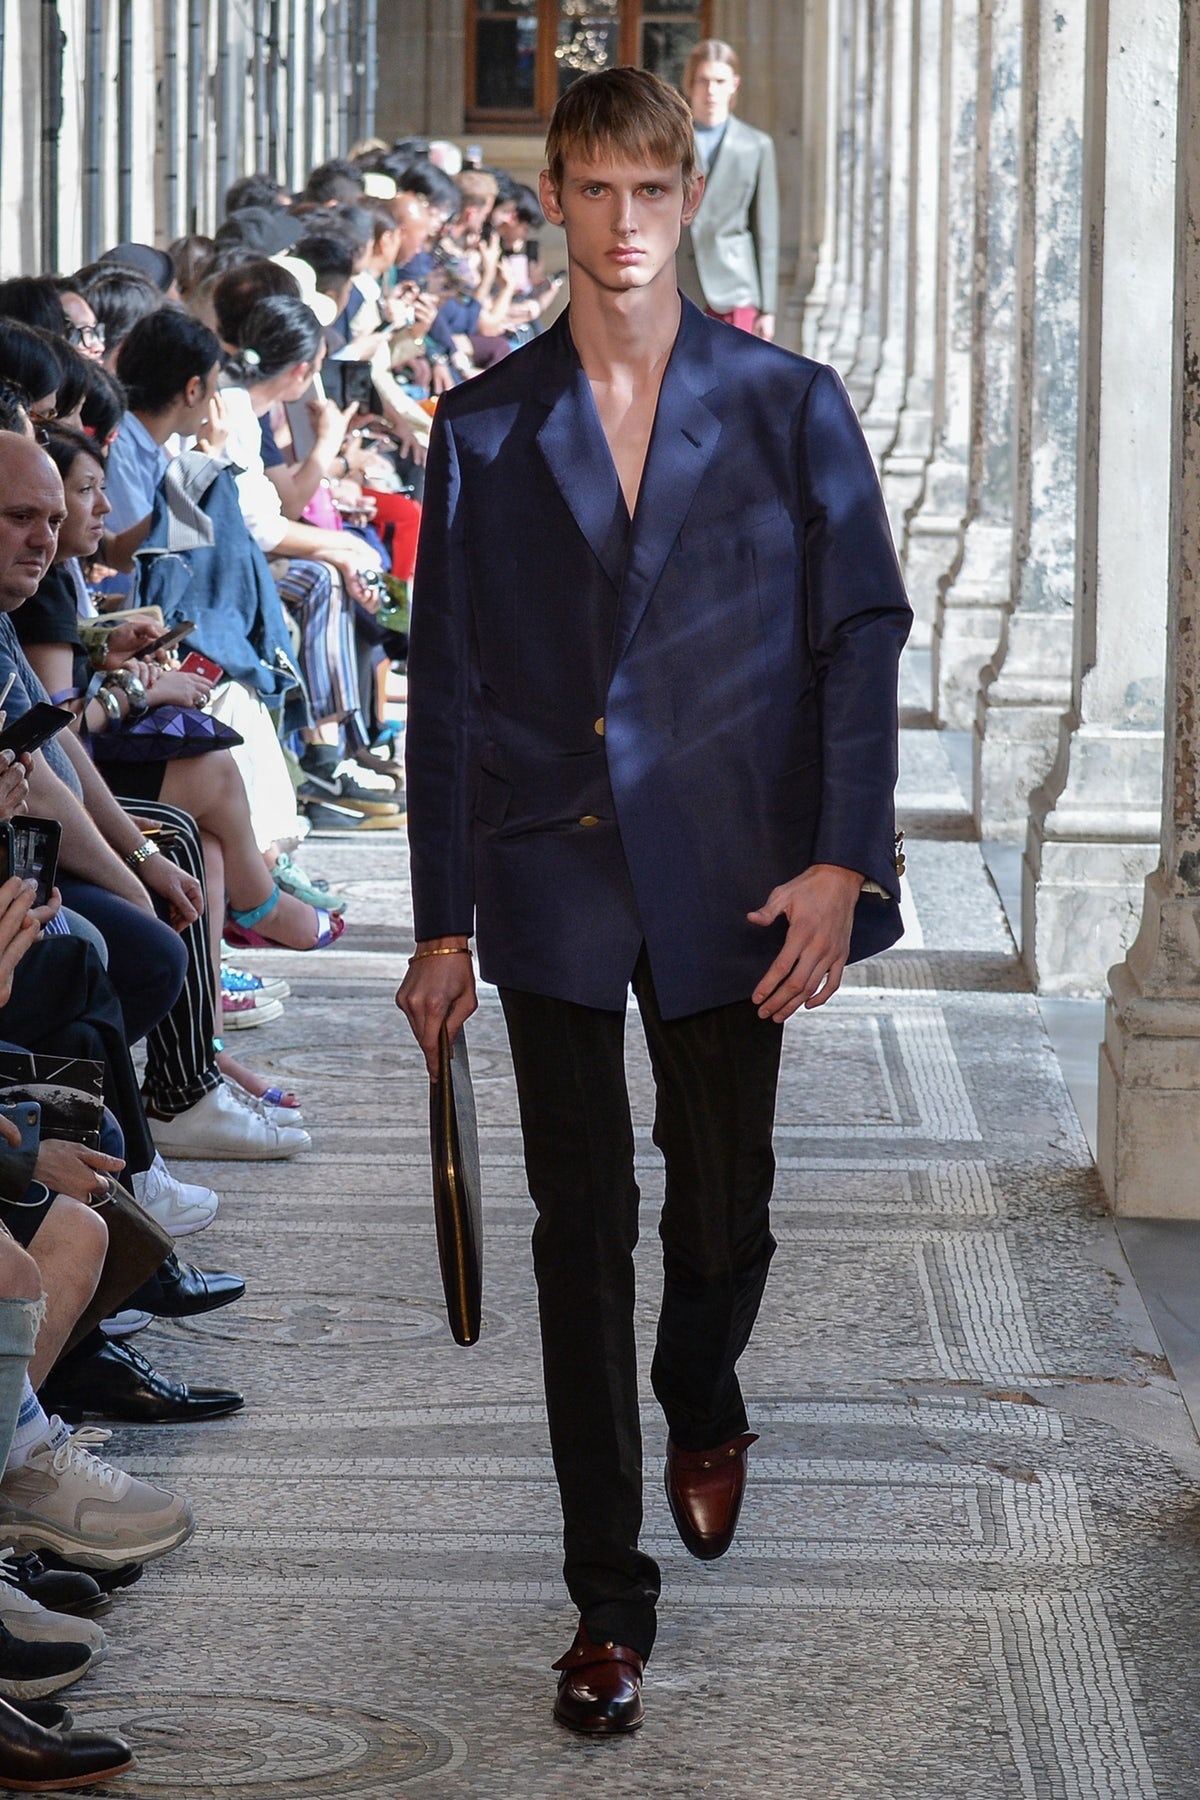 Dunhill's Antidote to Streetwear